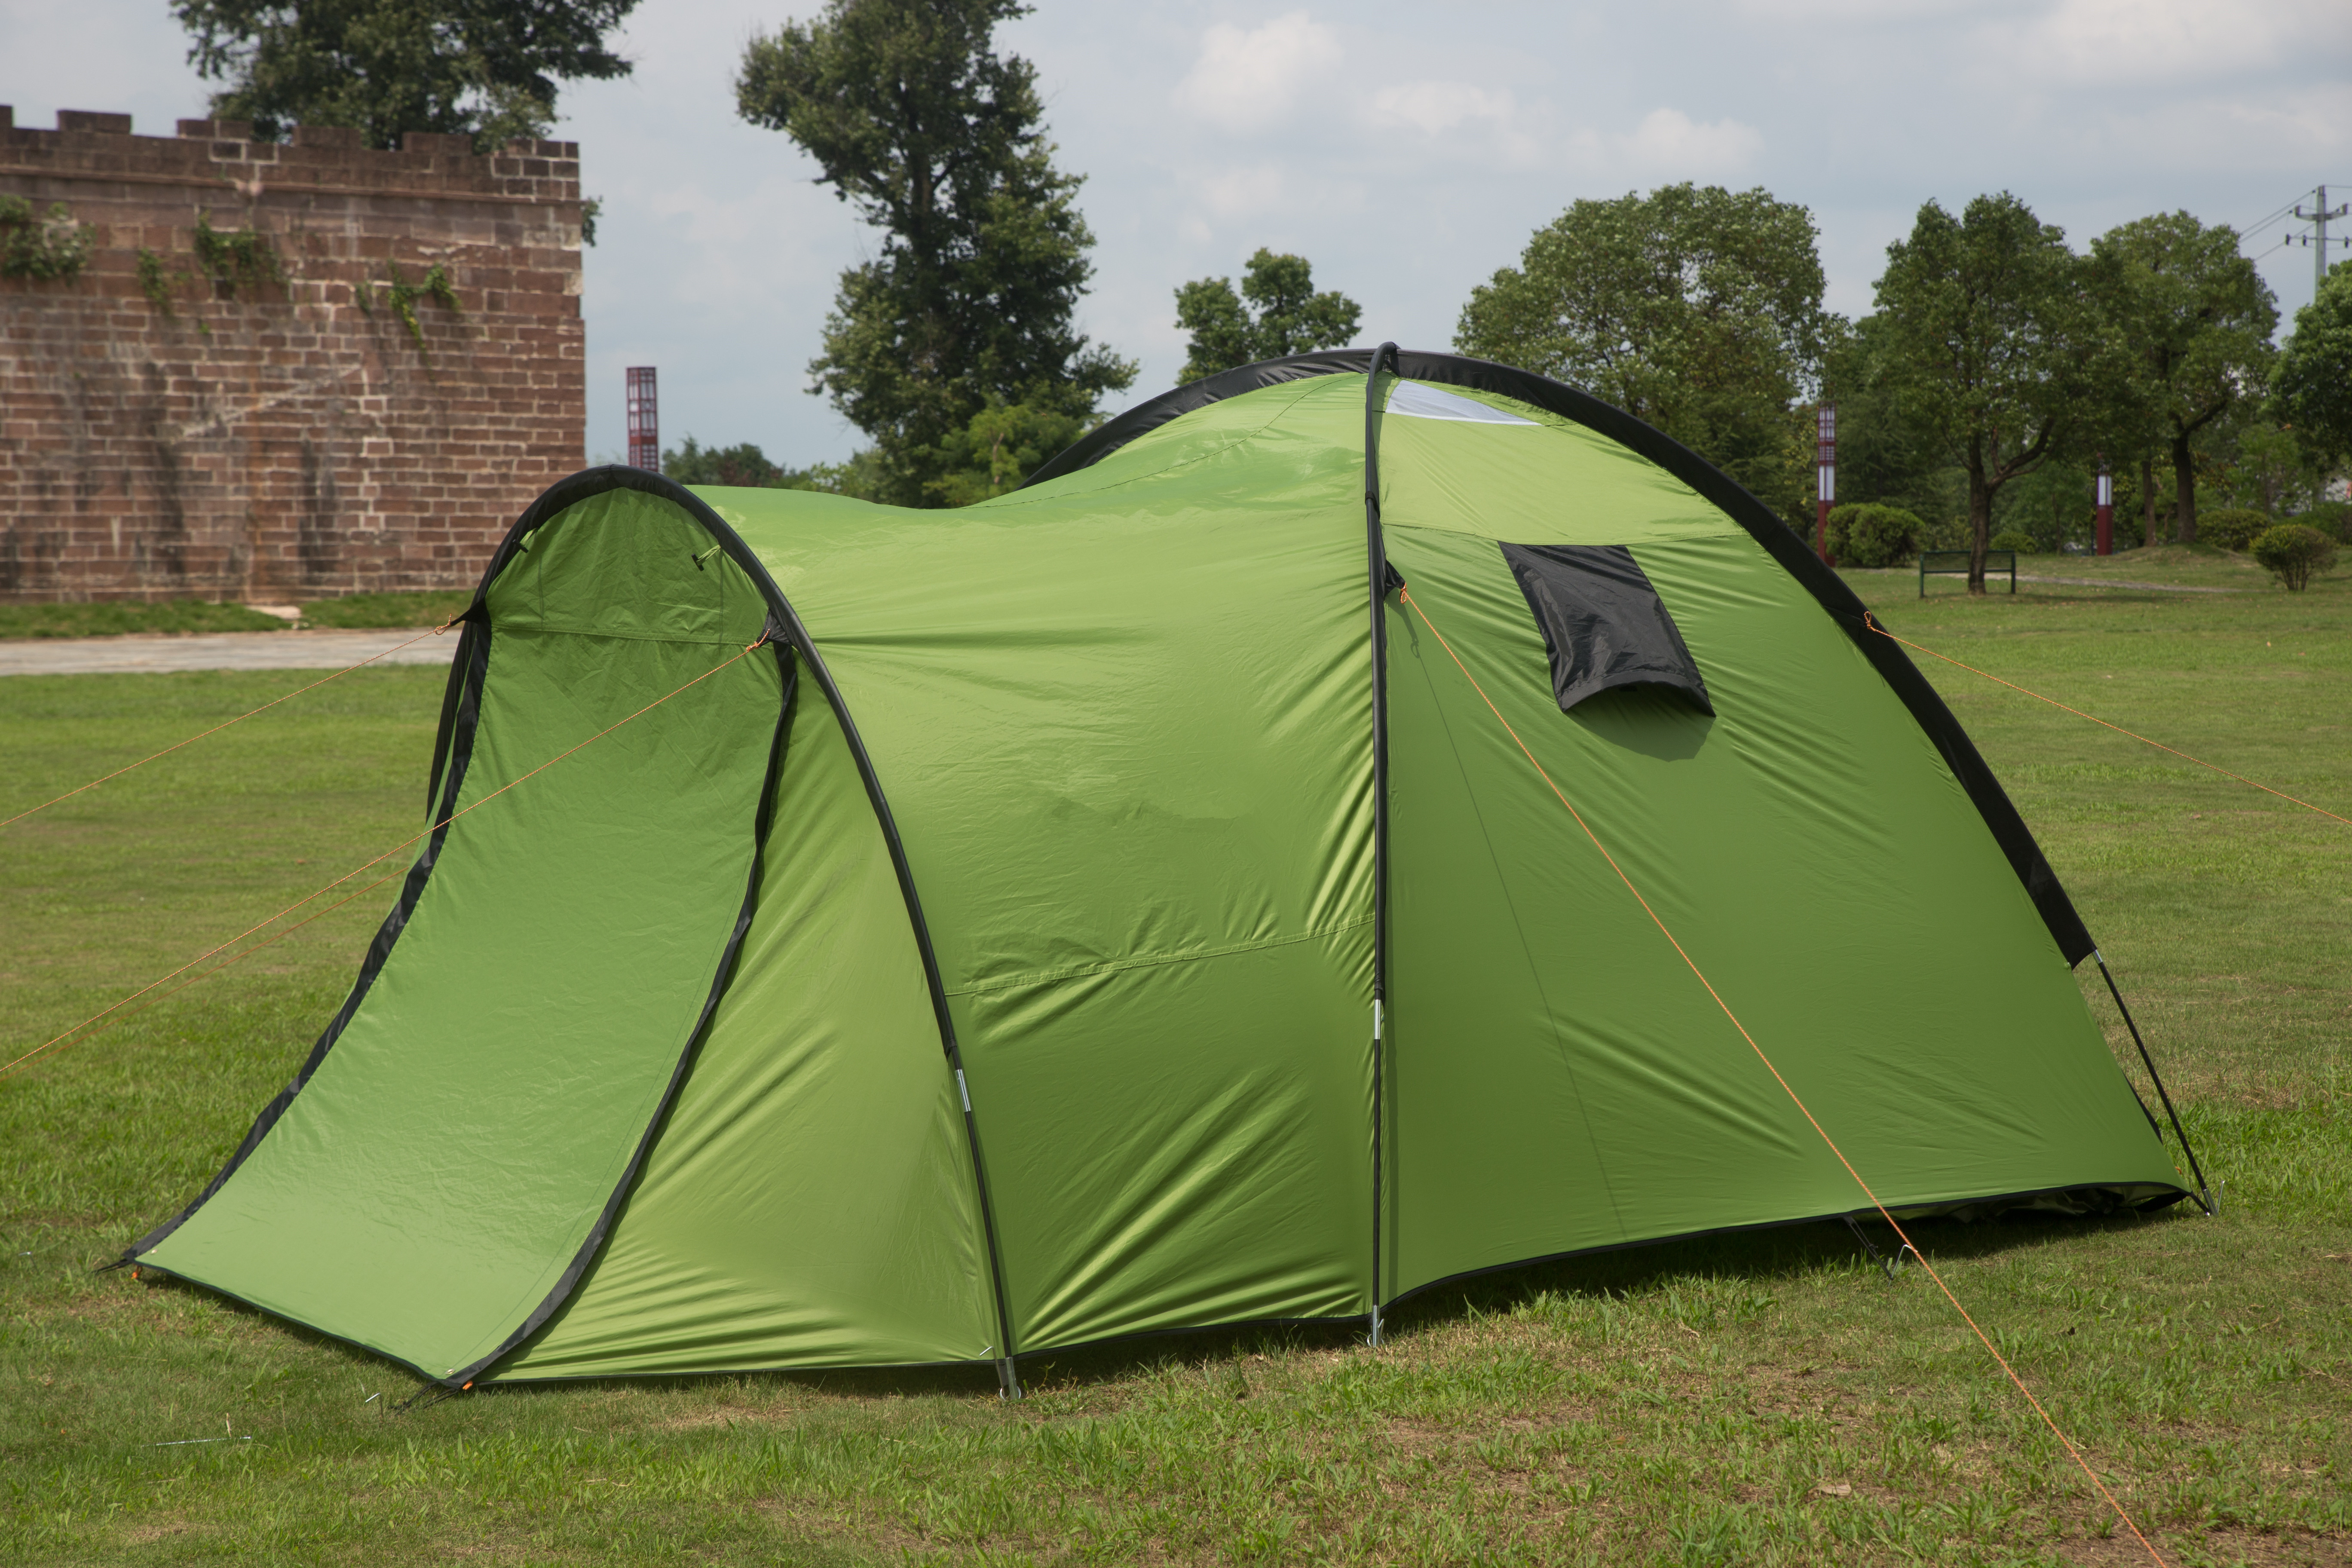 4 Person Instant Tent : Person instant cabin camping tent hikingtraveling easy